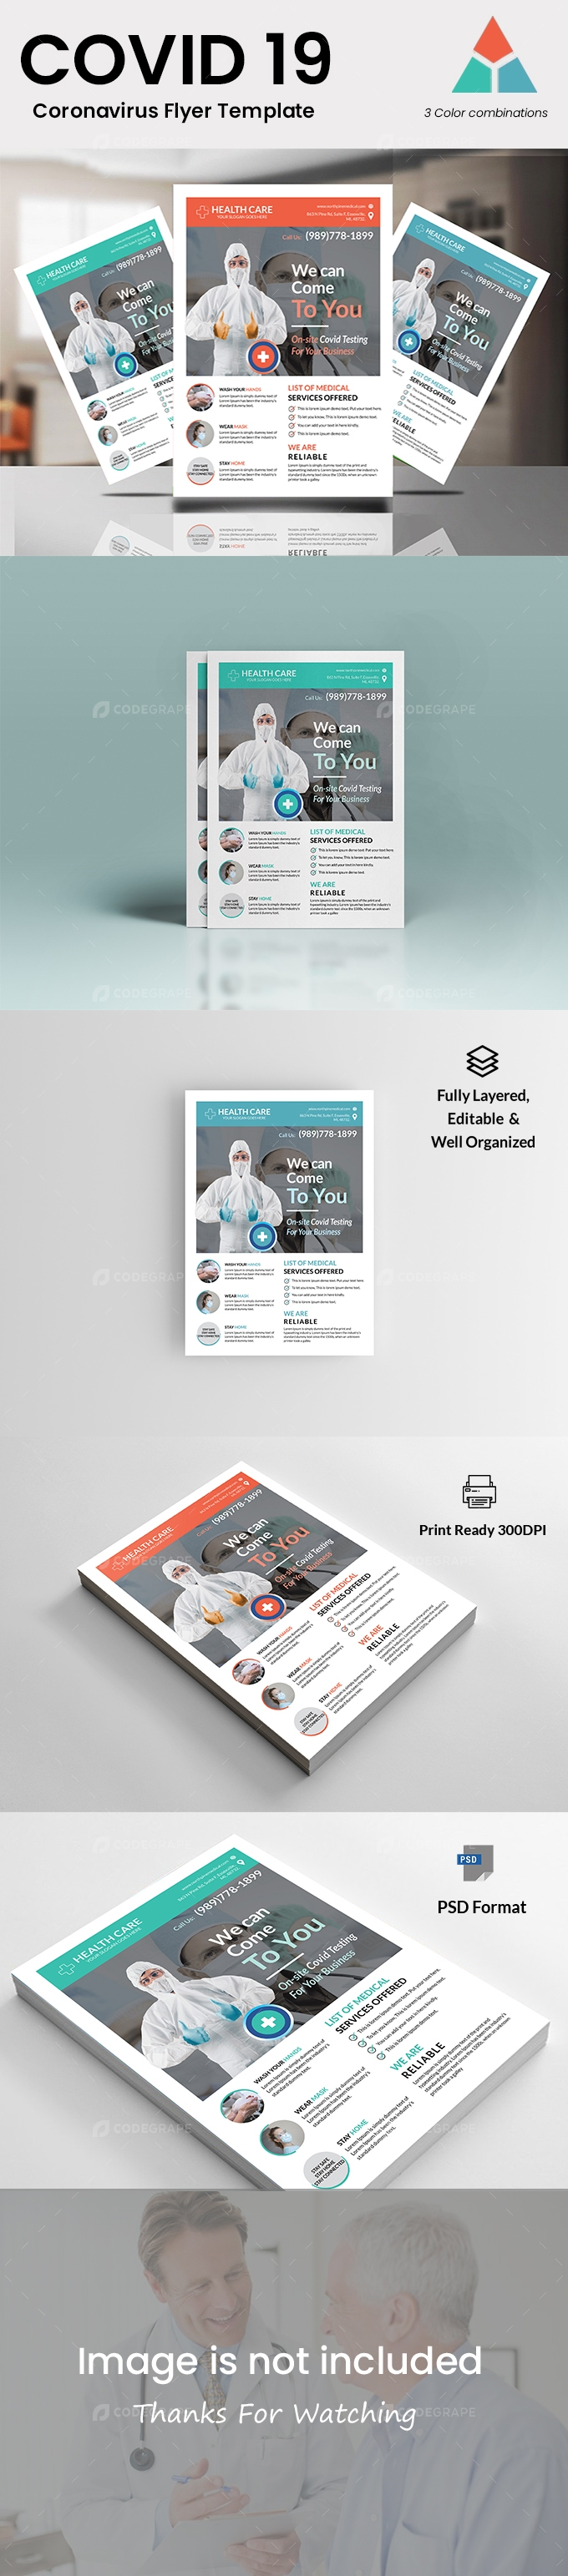 Covid 19 Flyer Template